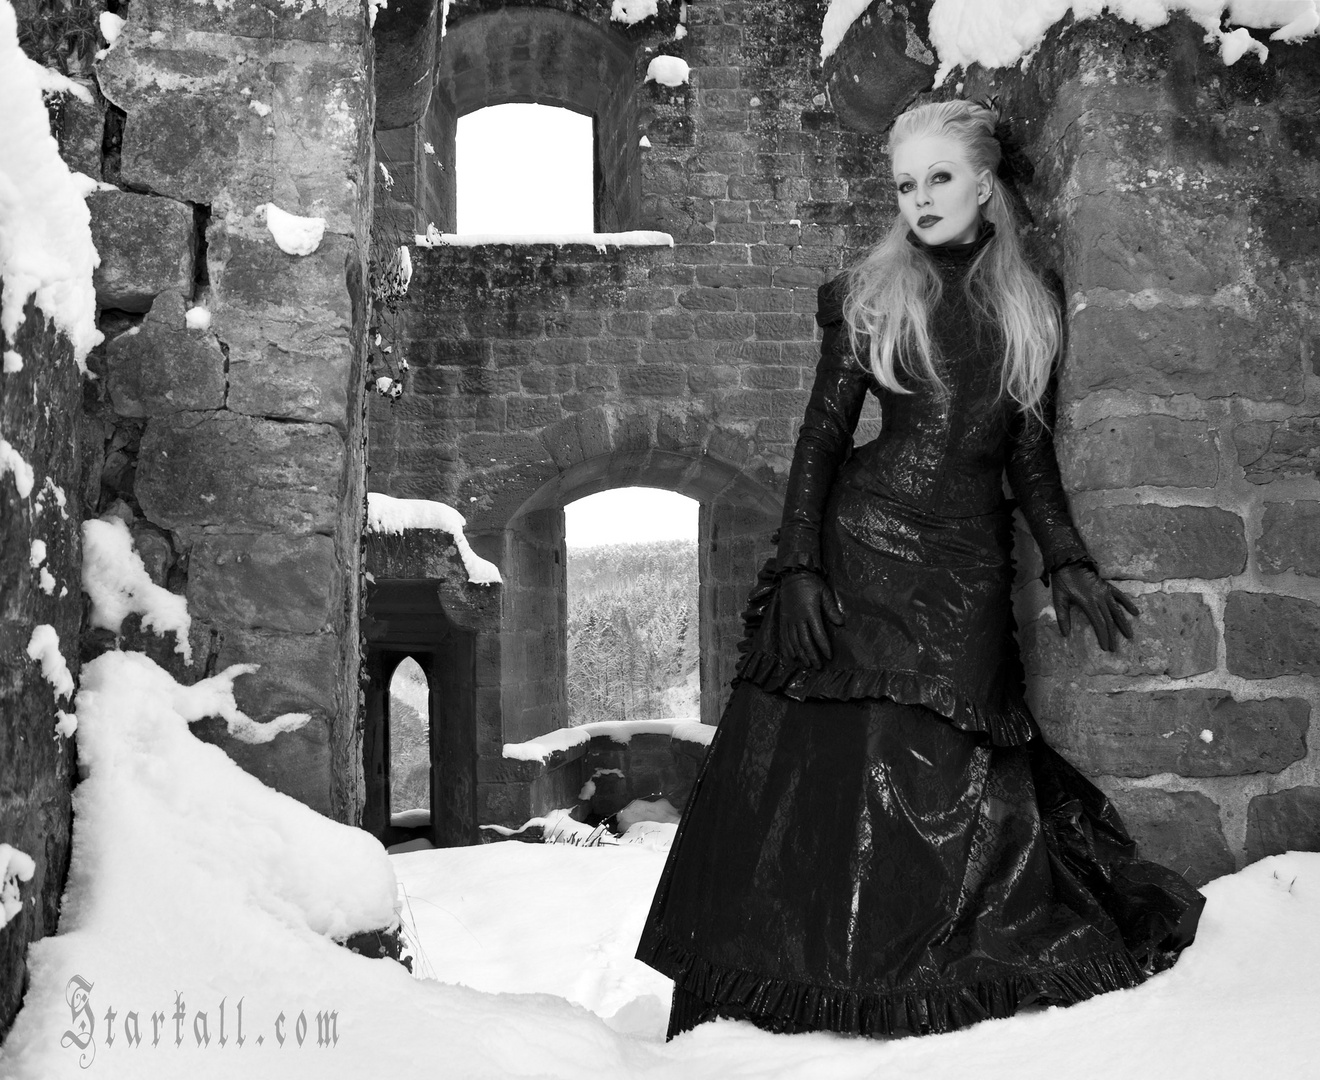 The Lady of Castle Frankenstein